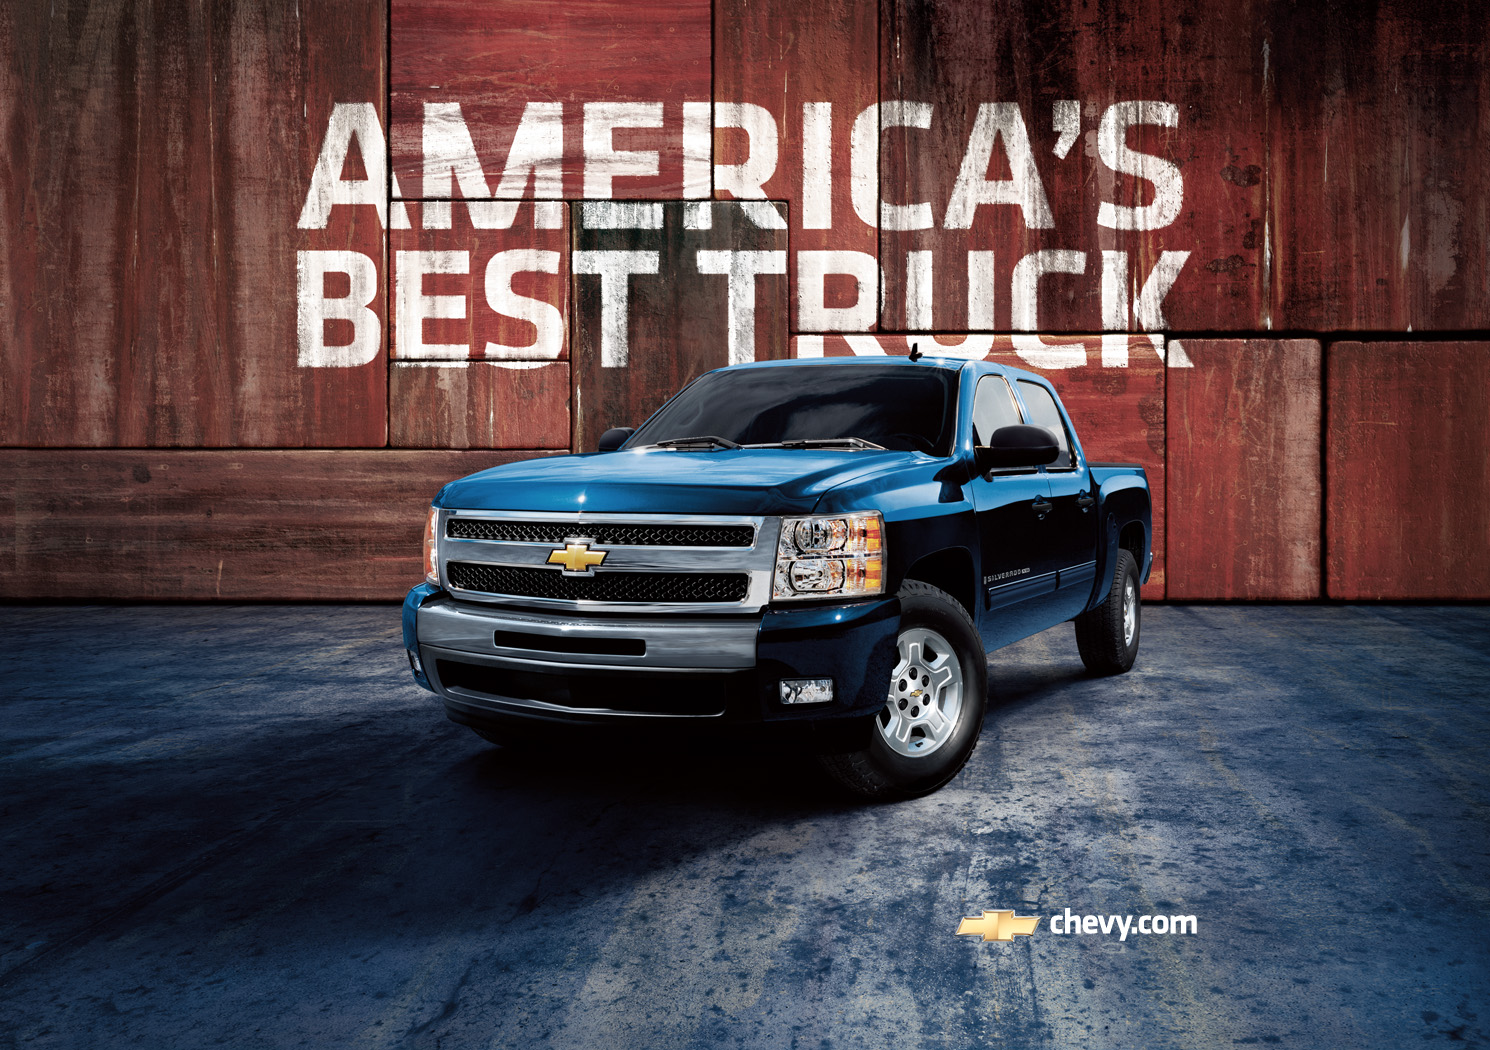 Truck Desktop Wallpapers Silverado Americas Best Truck Desktop 1490x1050